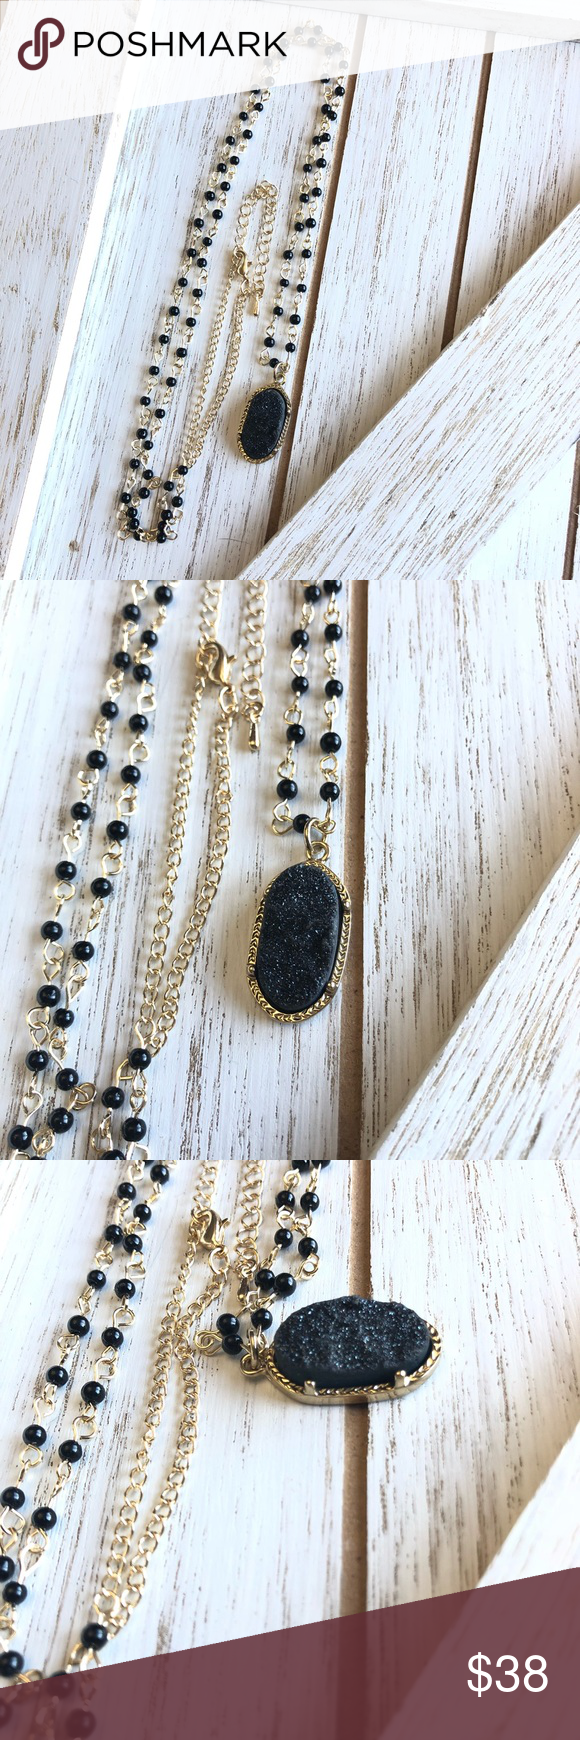 How To Include Taxidermy Into Trendy Home Decor: Natural Black Agate And Druzy Stone Necklace Beautiful Natural Black Druzy Stone Necklace